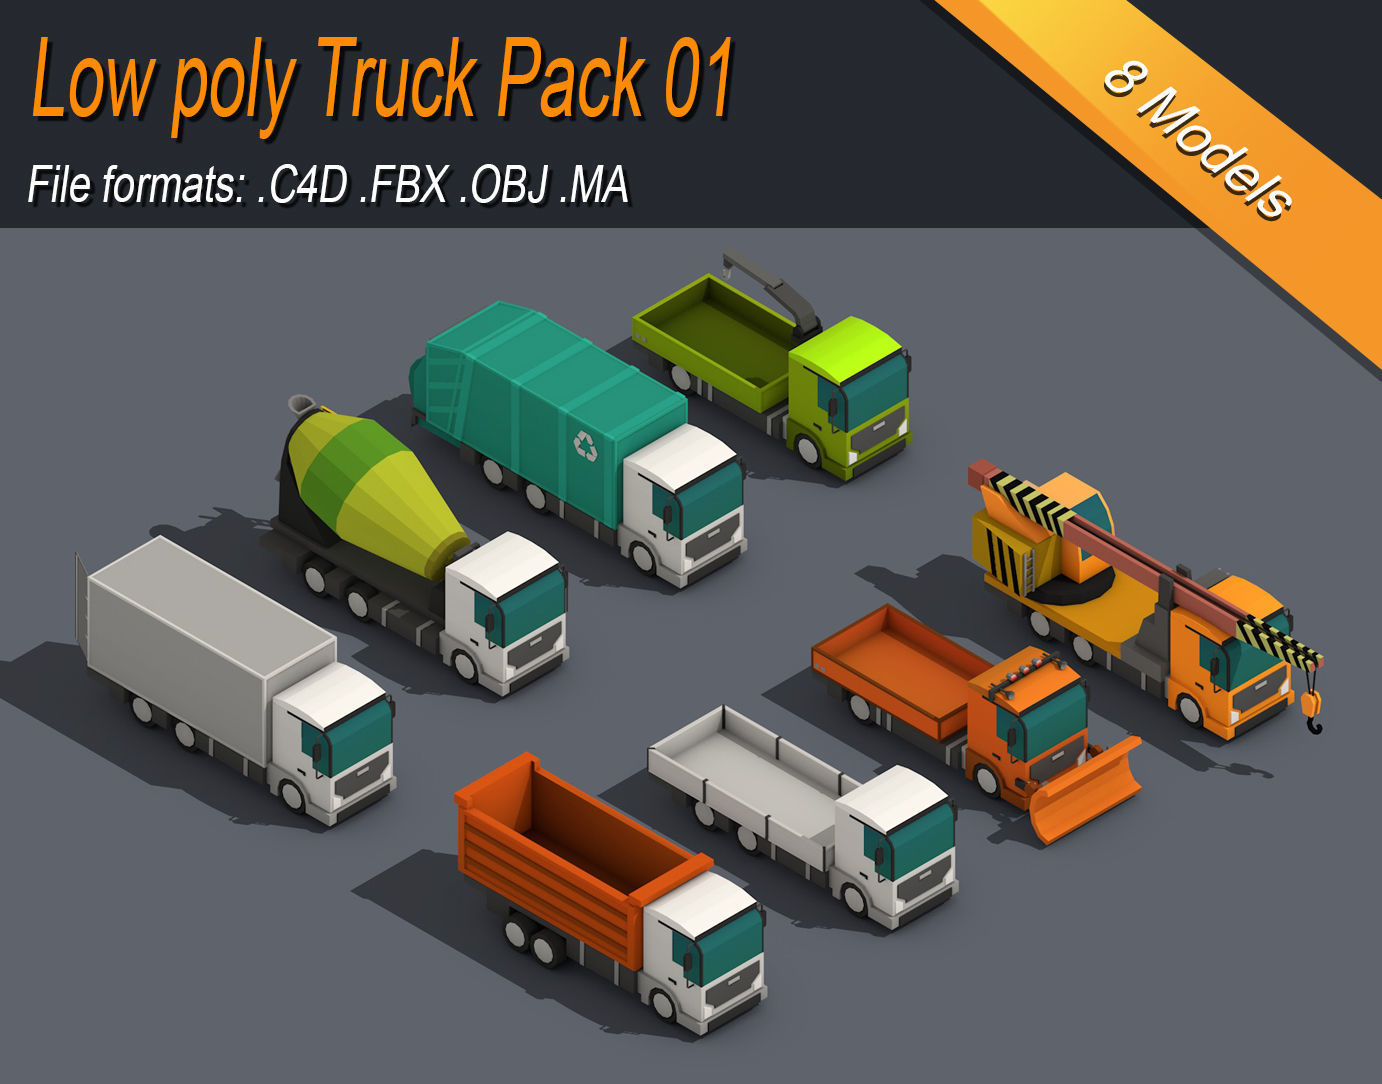 Low Poly Truck Pack 01 Isometric